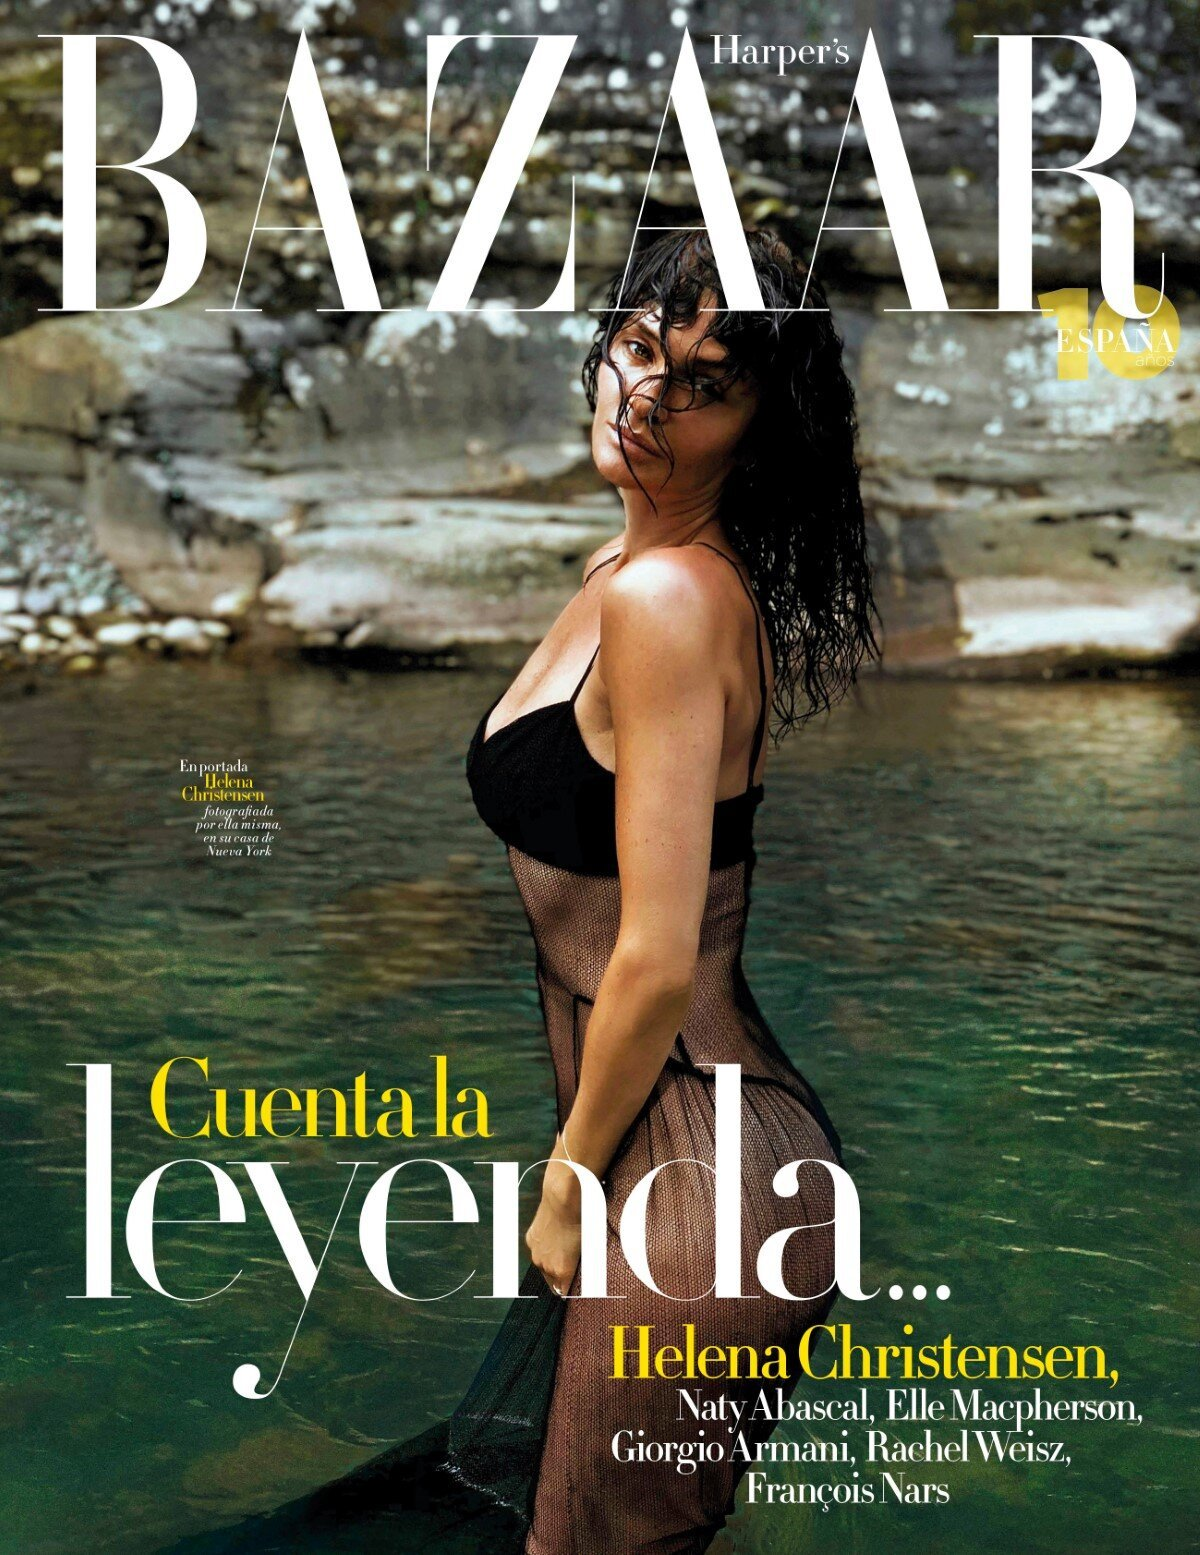 Helena Christensen Covers Harpers Bazaar Spain July 2020